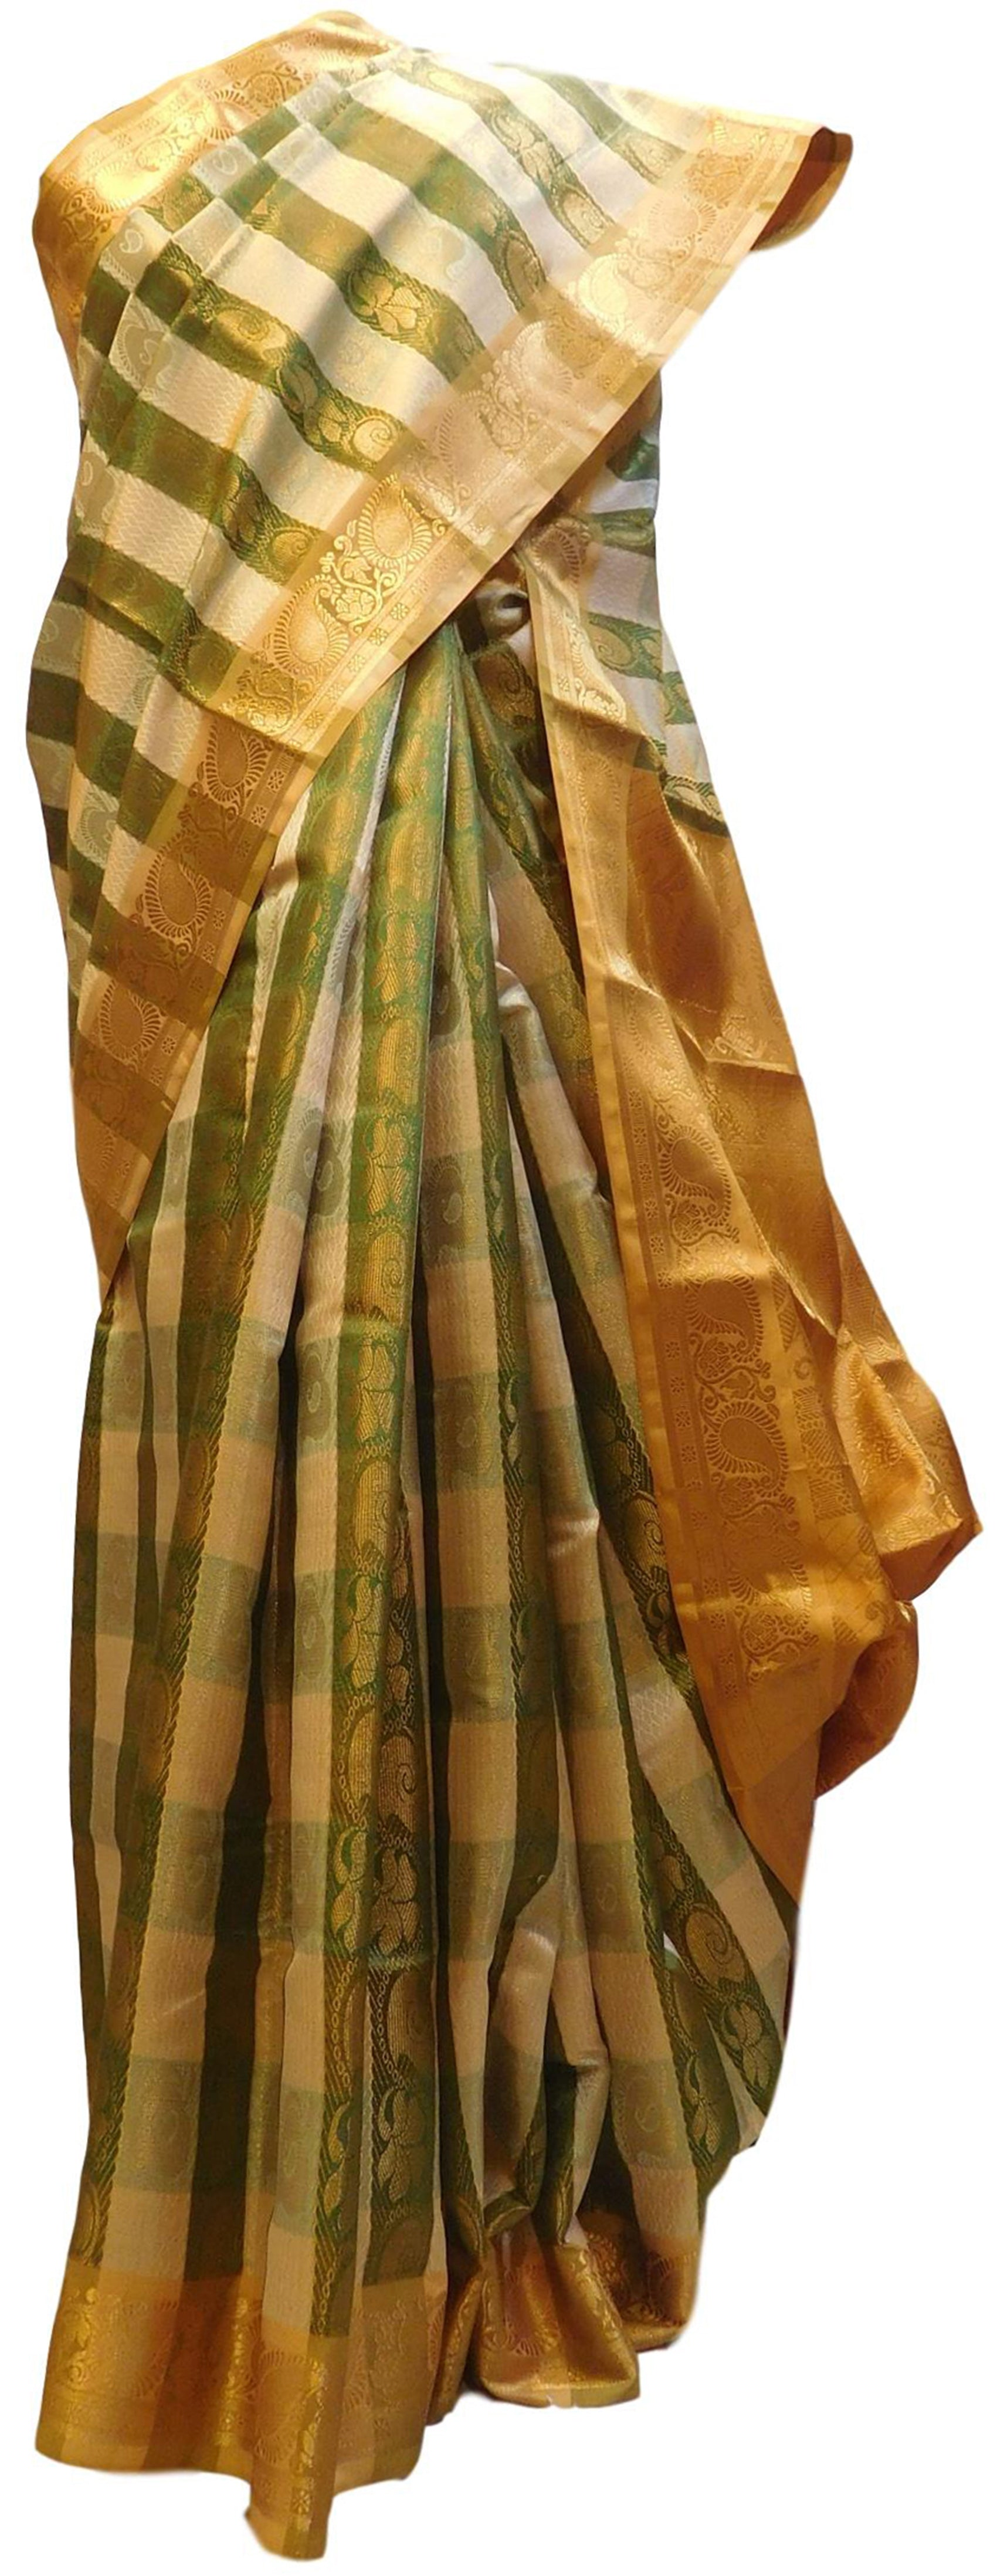 Green & Cream Designer Bridal Hand Weaven Pure Benarasi Zari Work Saree Sari With Blouse